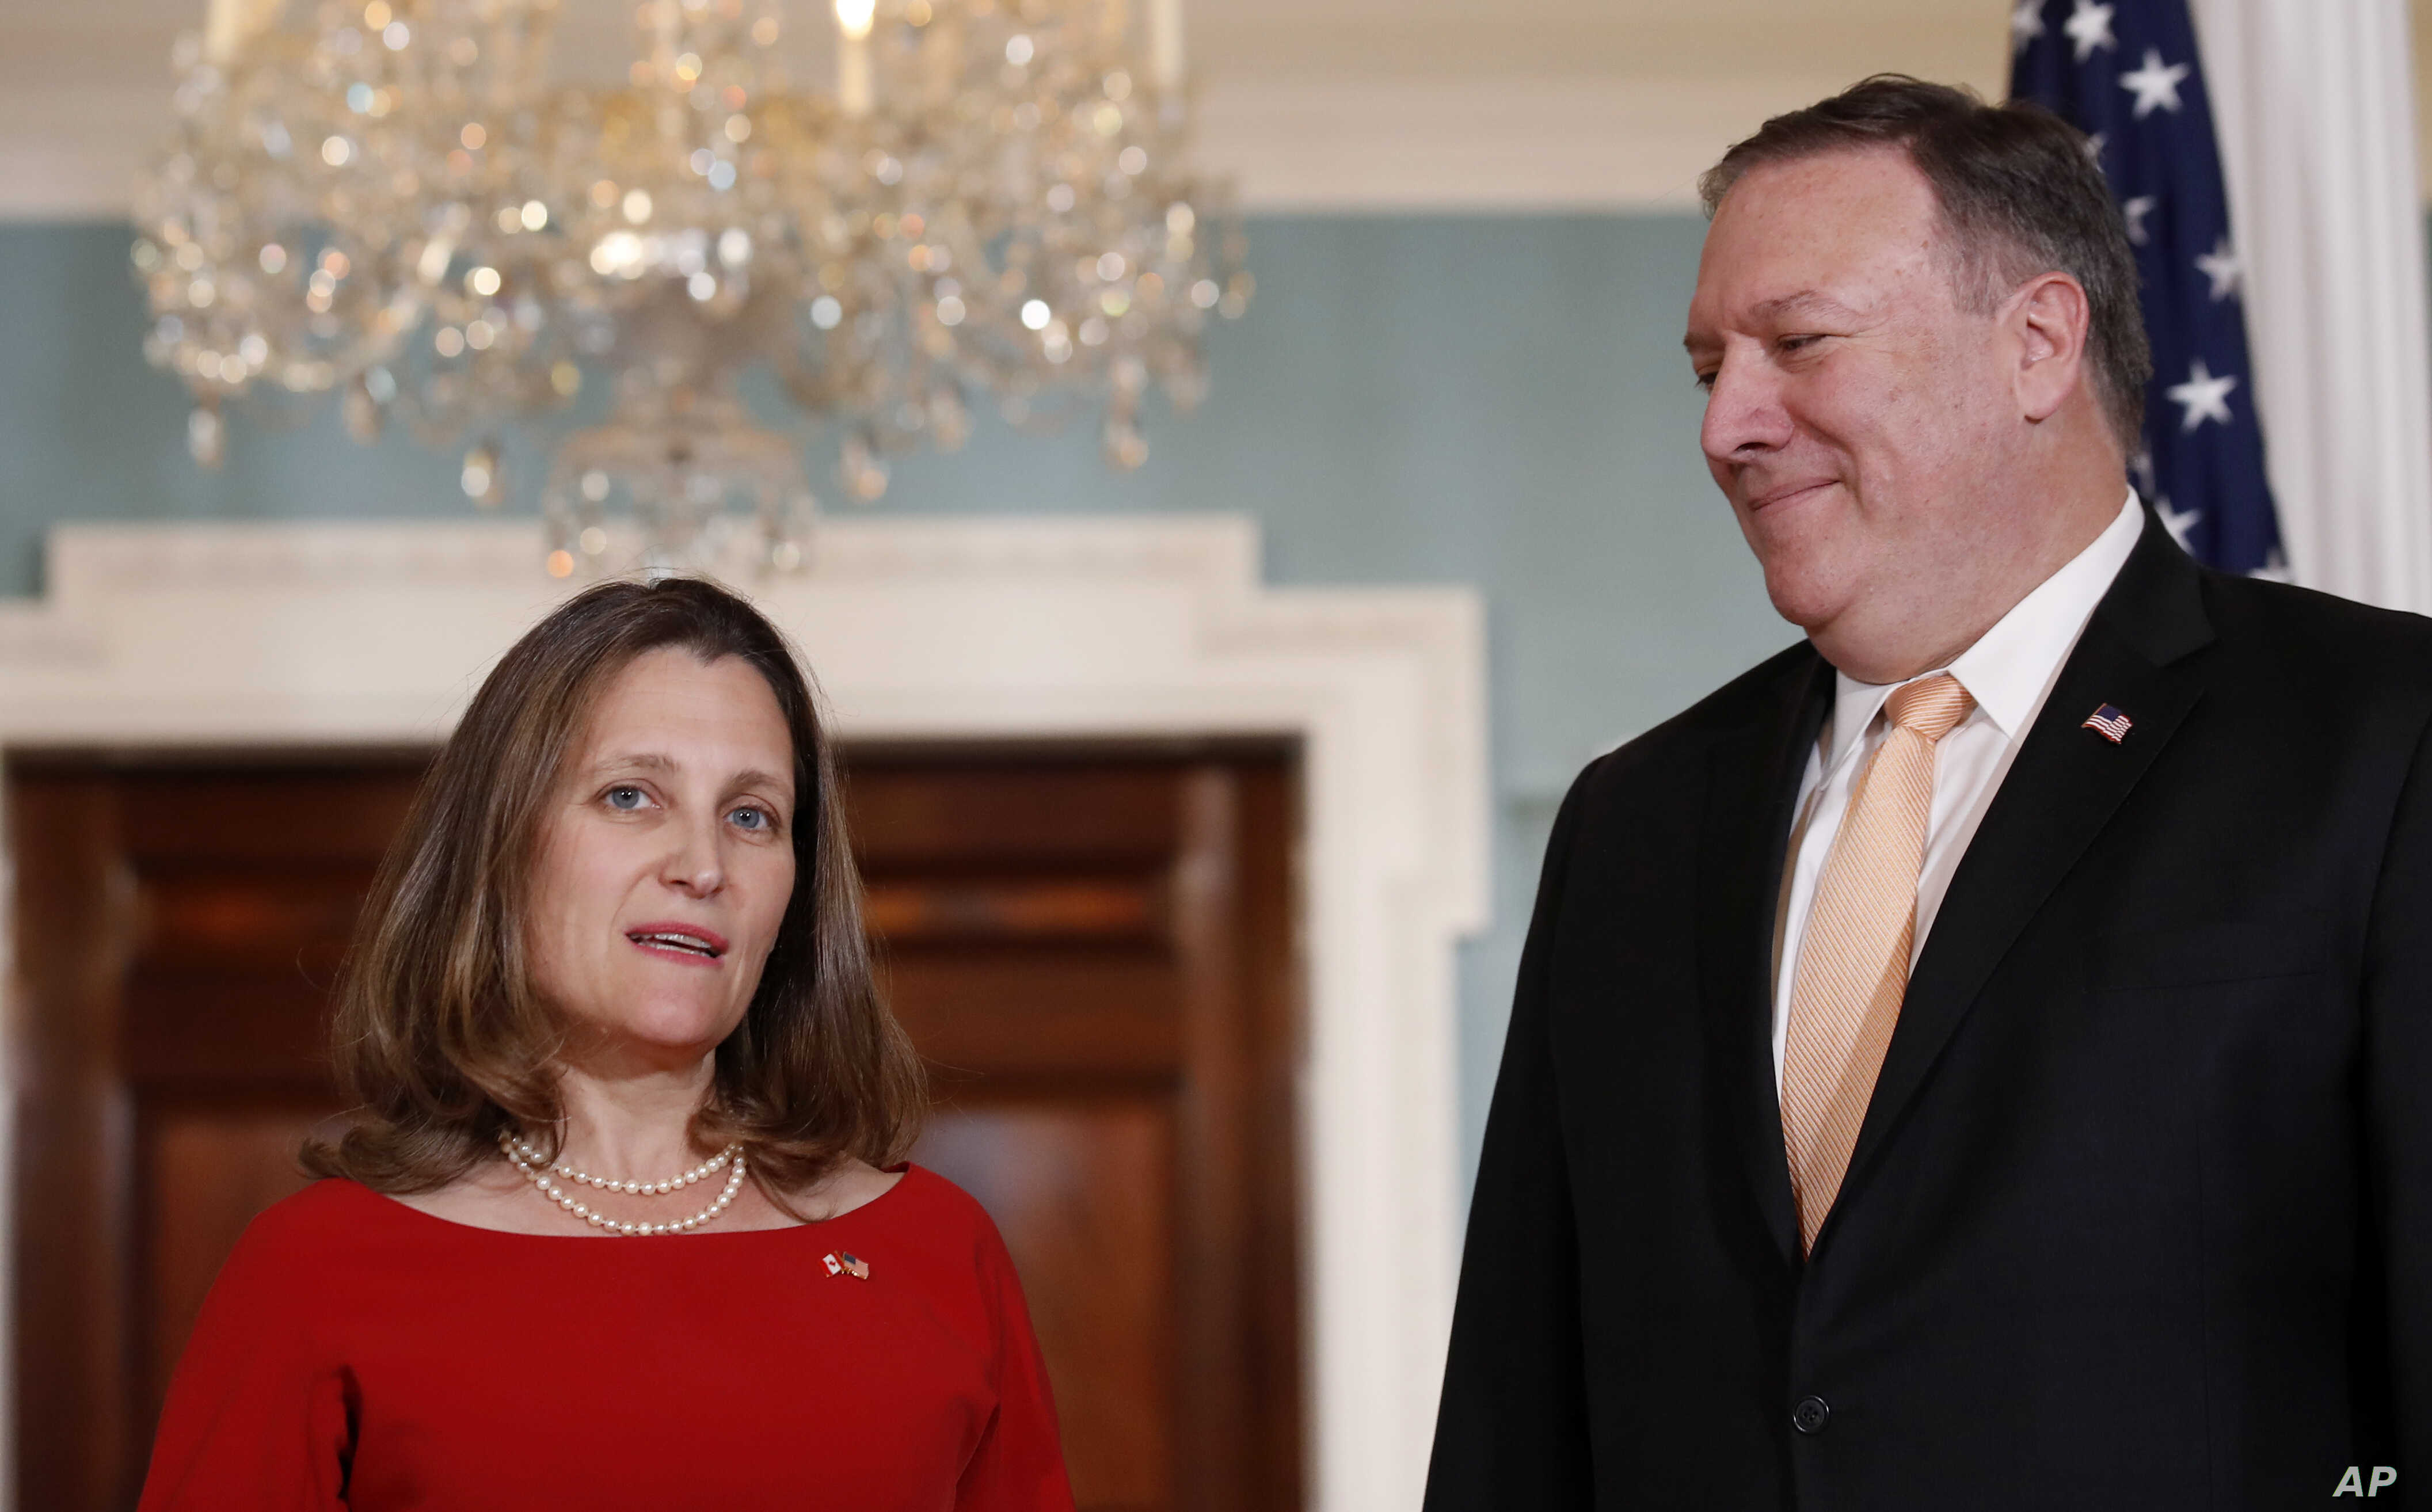 Canadian Minister of Foreign Affairs, Chrystia Freeland speaks with Secretary of State Mike Pompeo, before their meeting at the State Department, May 11, 2018 in Washington.